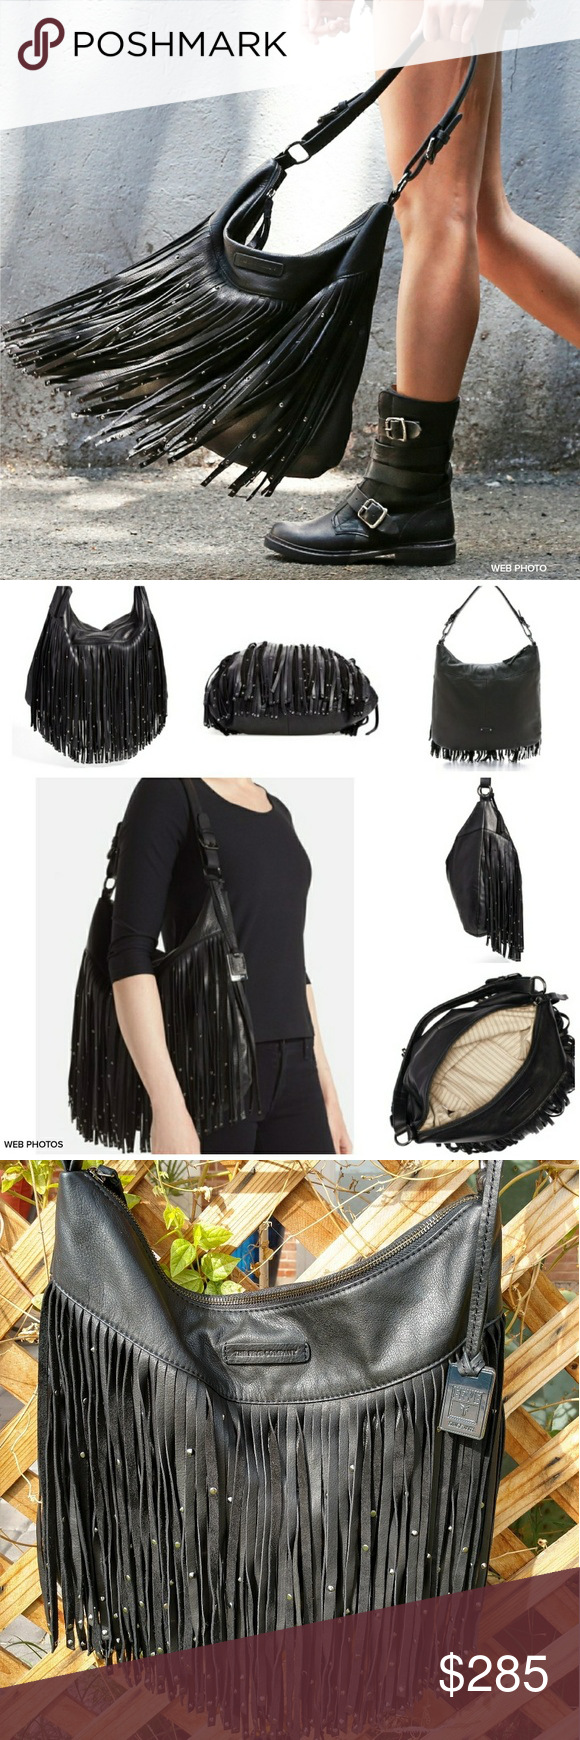 """NWT FRYE Heidi Stud Fringe Hobo Leather Bag Biker babe or boho girl, this studded hobo is one serious flirt. An extra-long curtain of leather fringe cascades from this bag, flashing shiny metal studs with every swing. Soft Italian leather feels luxe over the shoulder and zip closure keeps essentials safe.  - Studding hardware - 14"""" height - 16"""" width - 9 1/2"""" handle drop - Three interior pockets - Zipper closure  Never carried.  Markings inside zipper pocket, see pics.  Frye tag still…"""